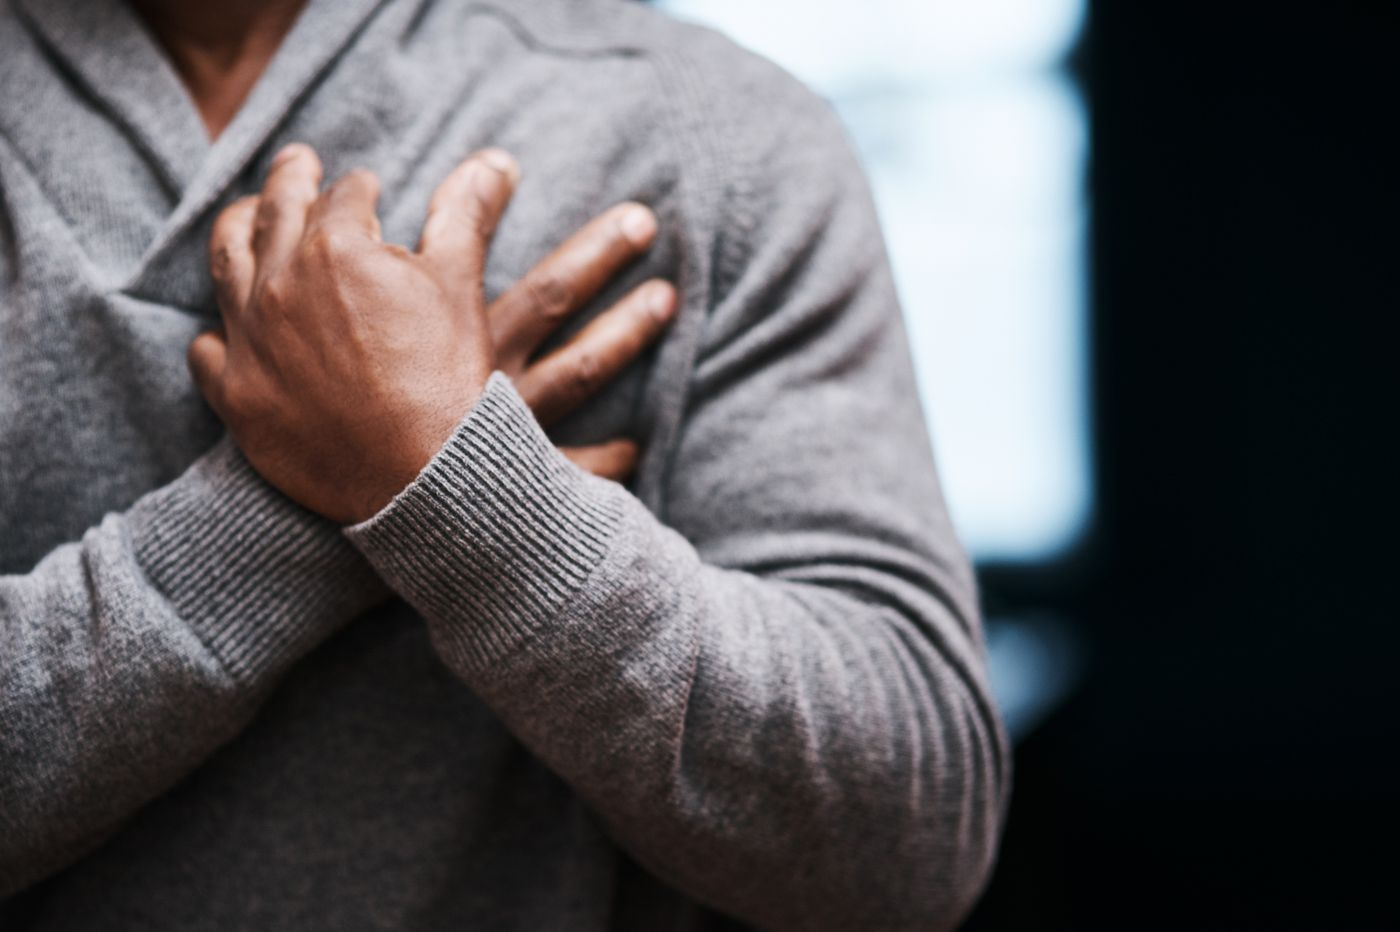 Q&A: When should I seek emergency care for chest pain?